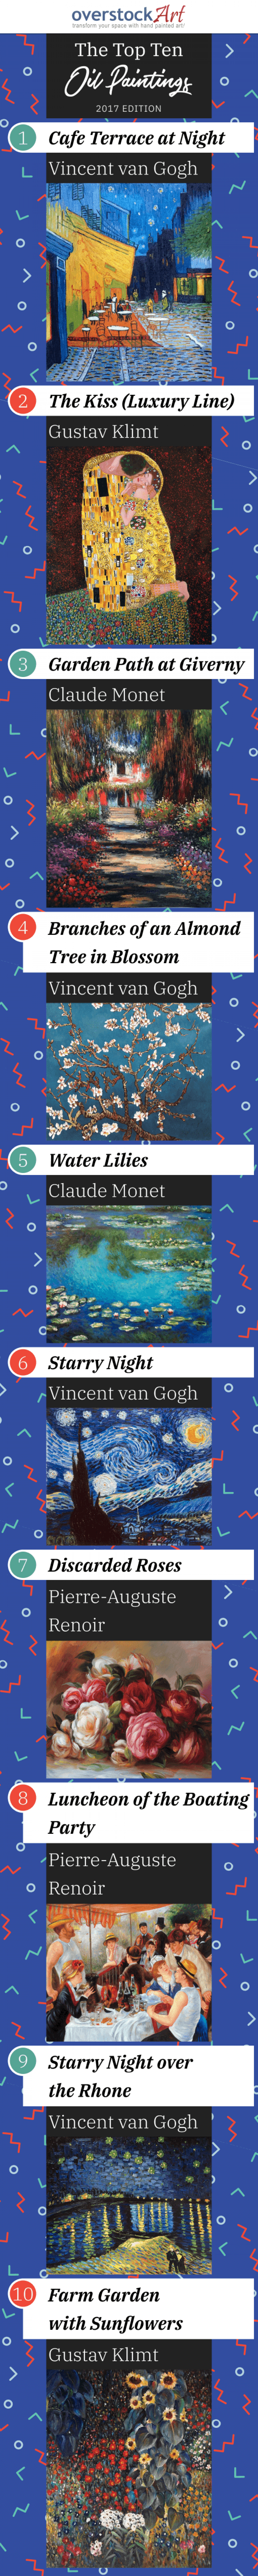 The Top 10 Oil Paintings of 2017 Revealed Infographic